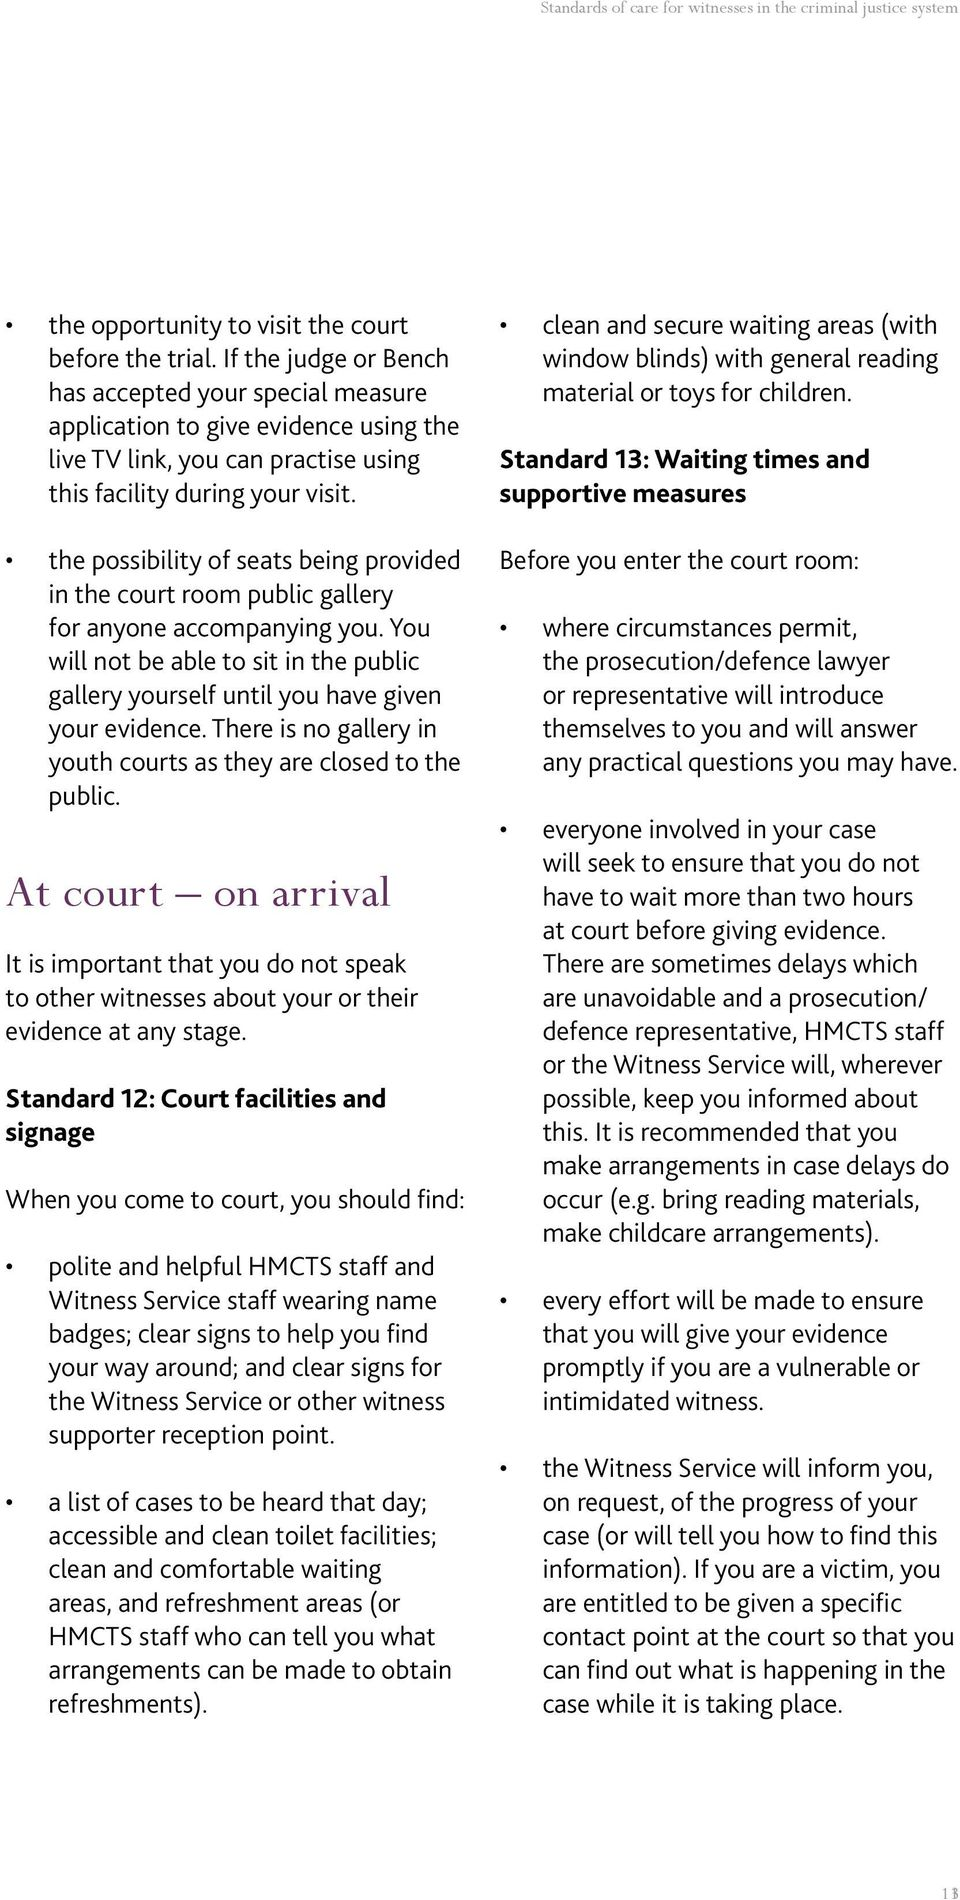 the possibility of seats being provided in the court room public gallery for anyone accompanying you. You will not be able to sit in the public gallery yourself until you have given your evidence.